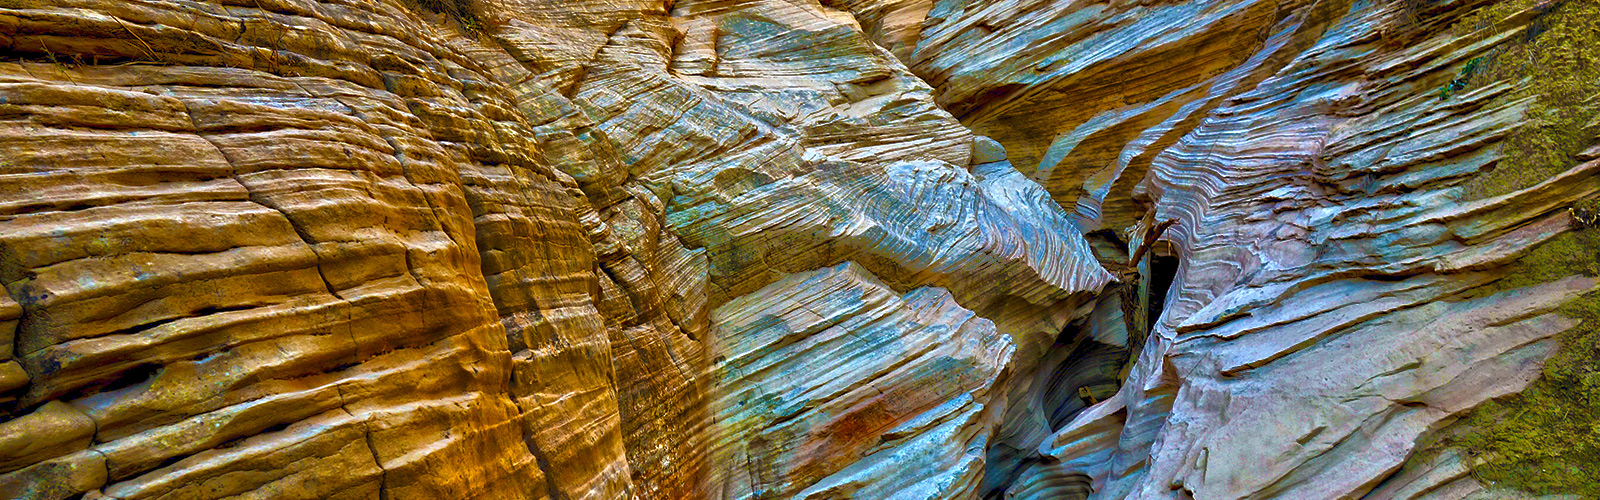 Tips For a Great Trip to Zion National Park